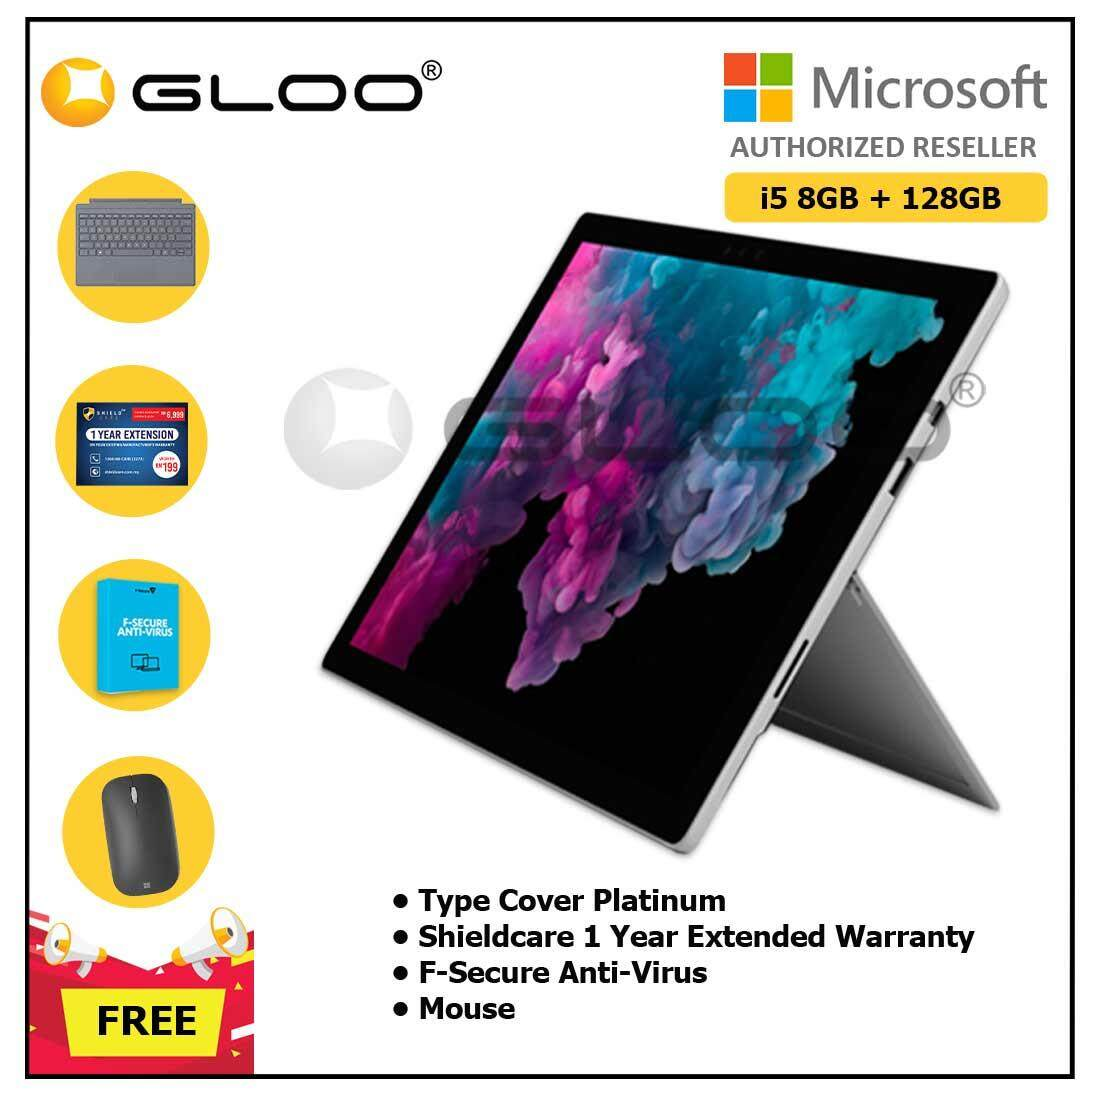 Microsoft Surface Pro 6 Core i5/8GB RAM -128GB + Type Cover Platinum + Shieldcare 1 Year Extended Warranty + F-Secure EndPoint Protection + Mouse